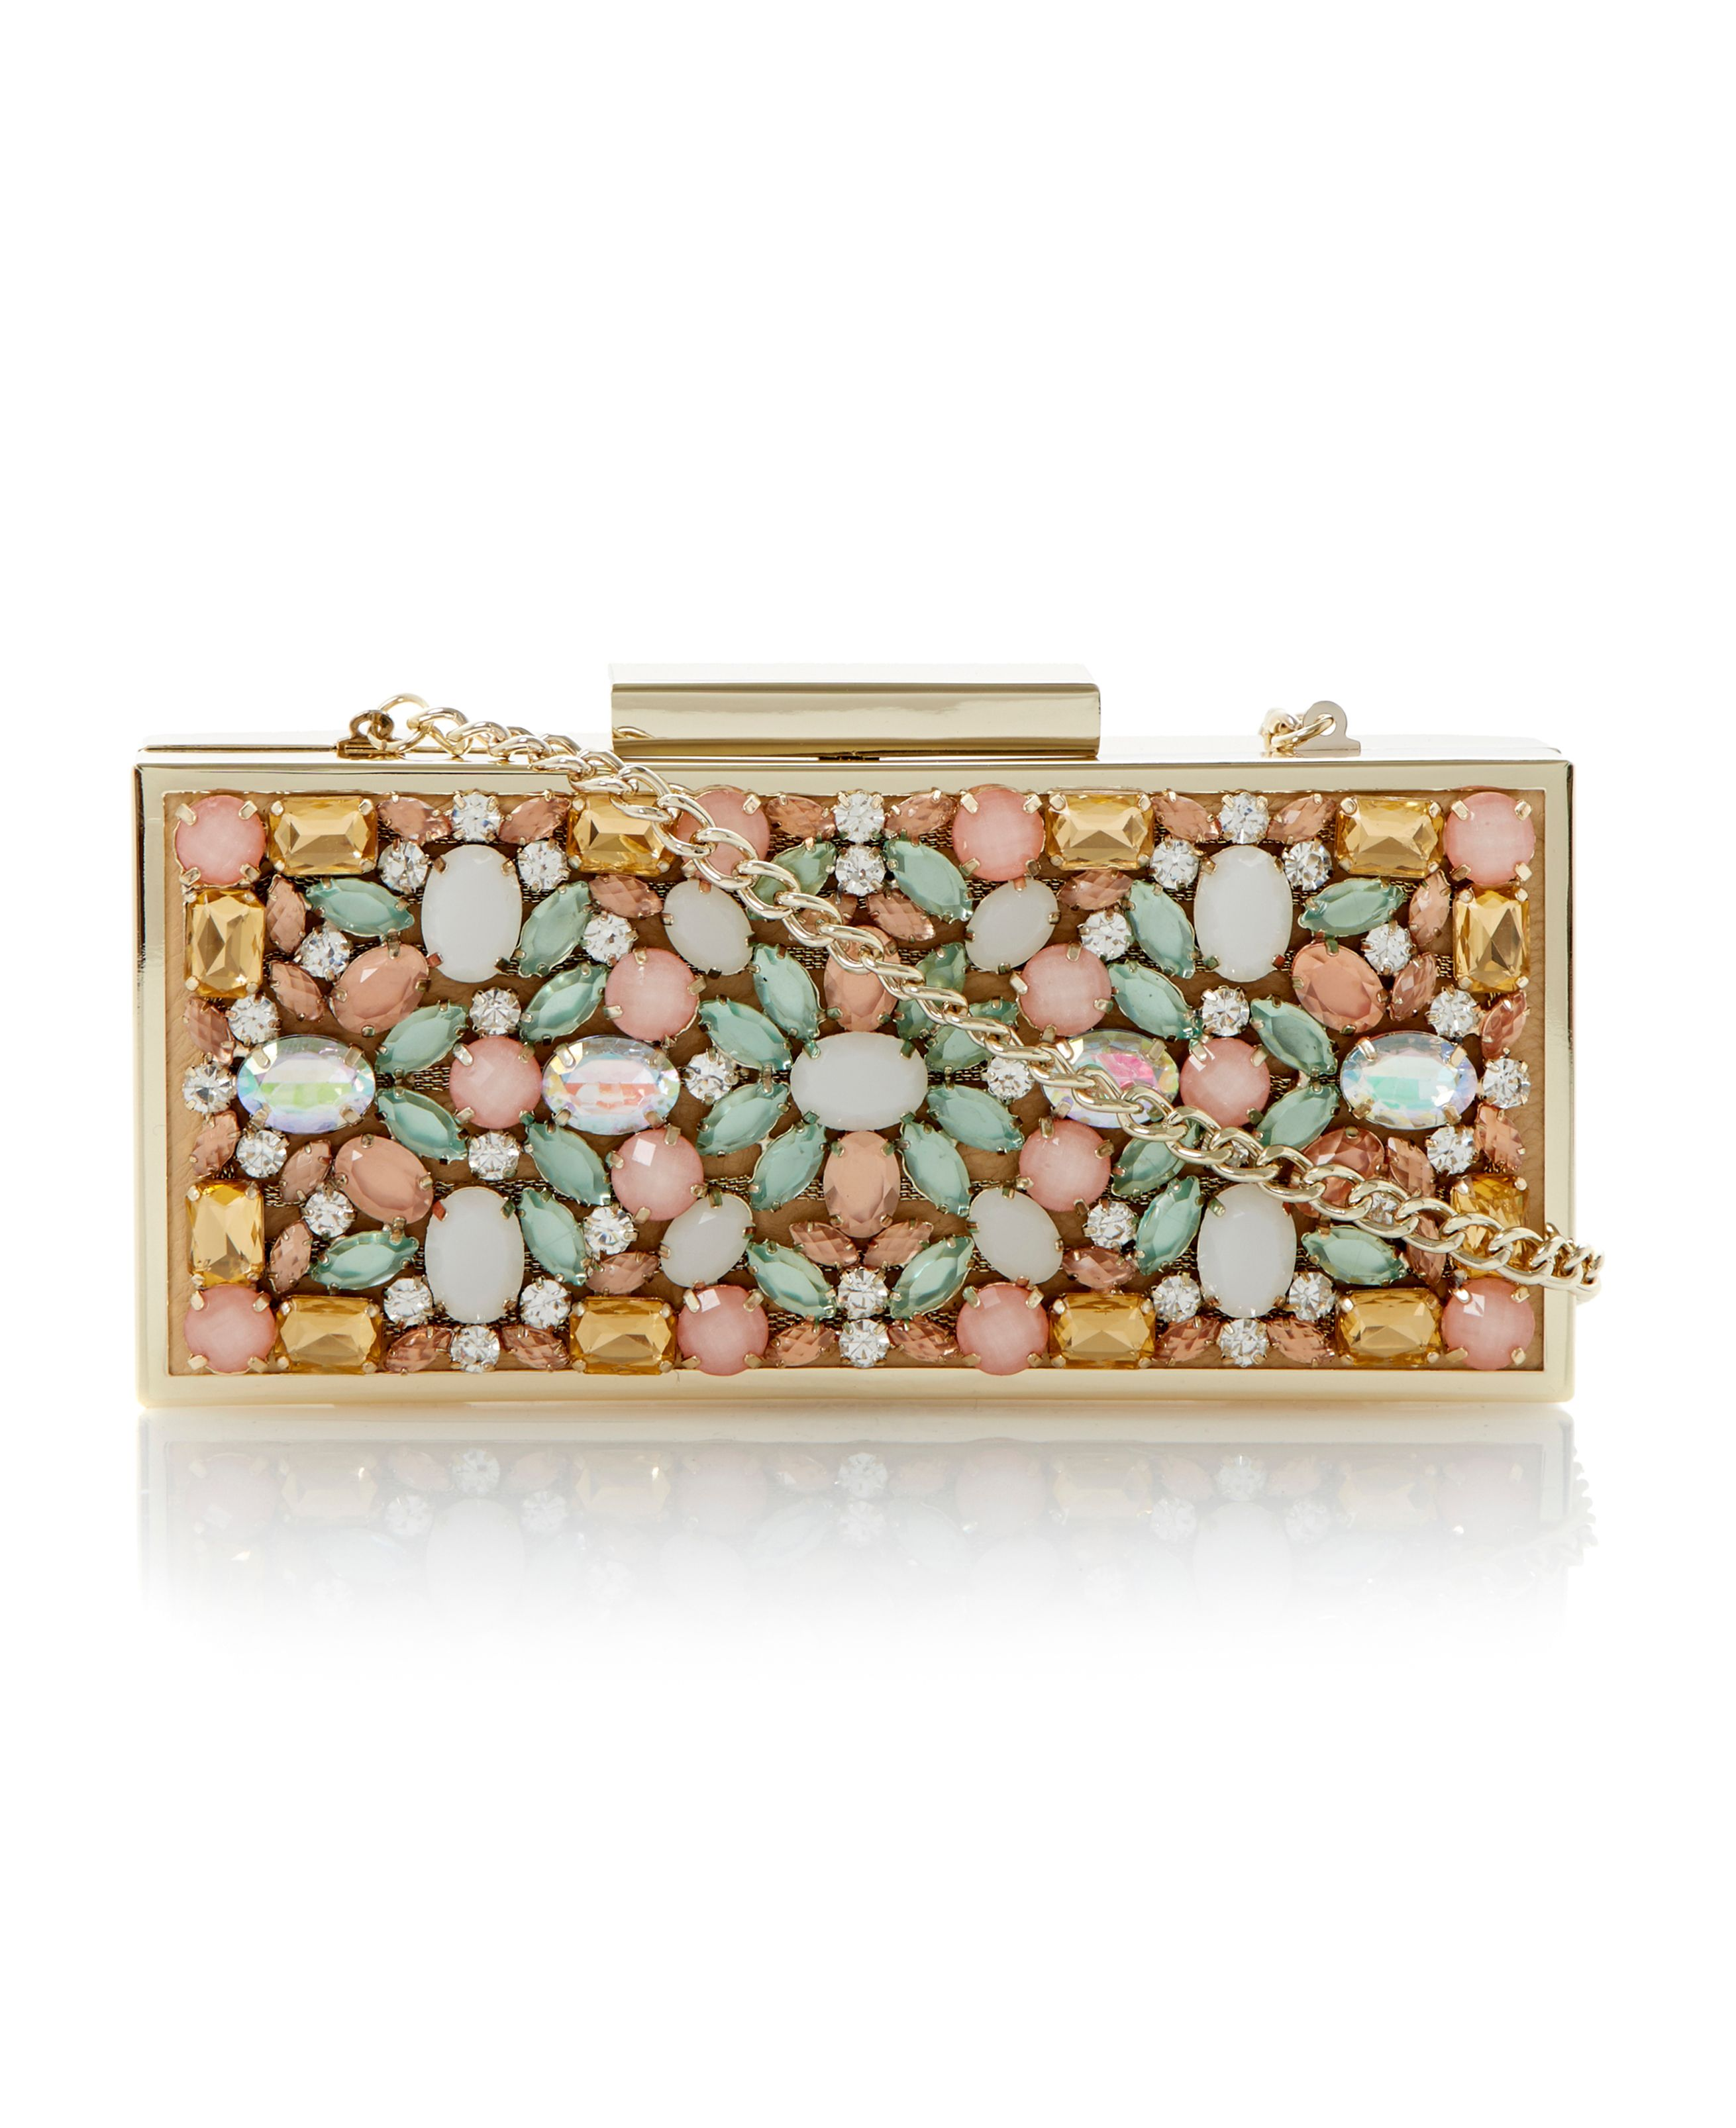 Ecasey jewelled box clutch bag